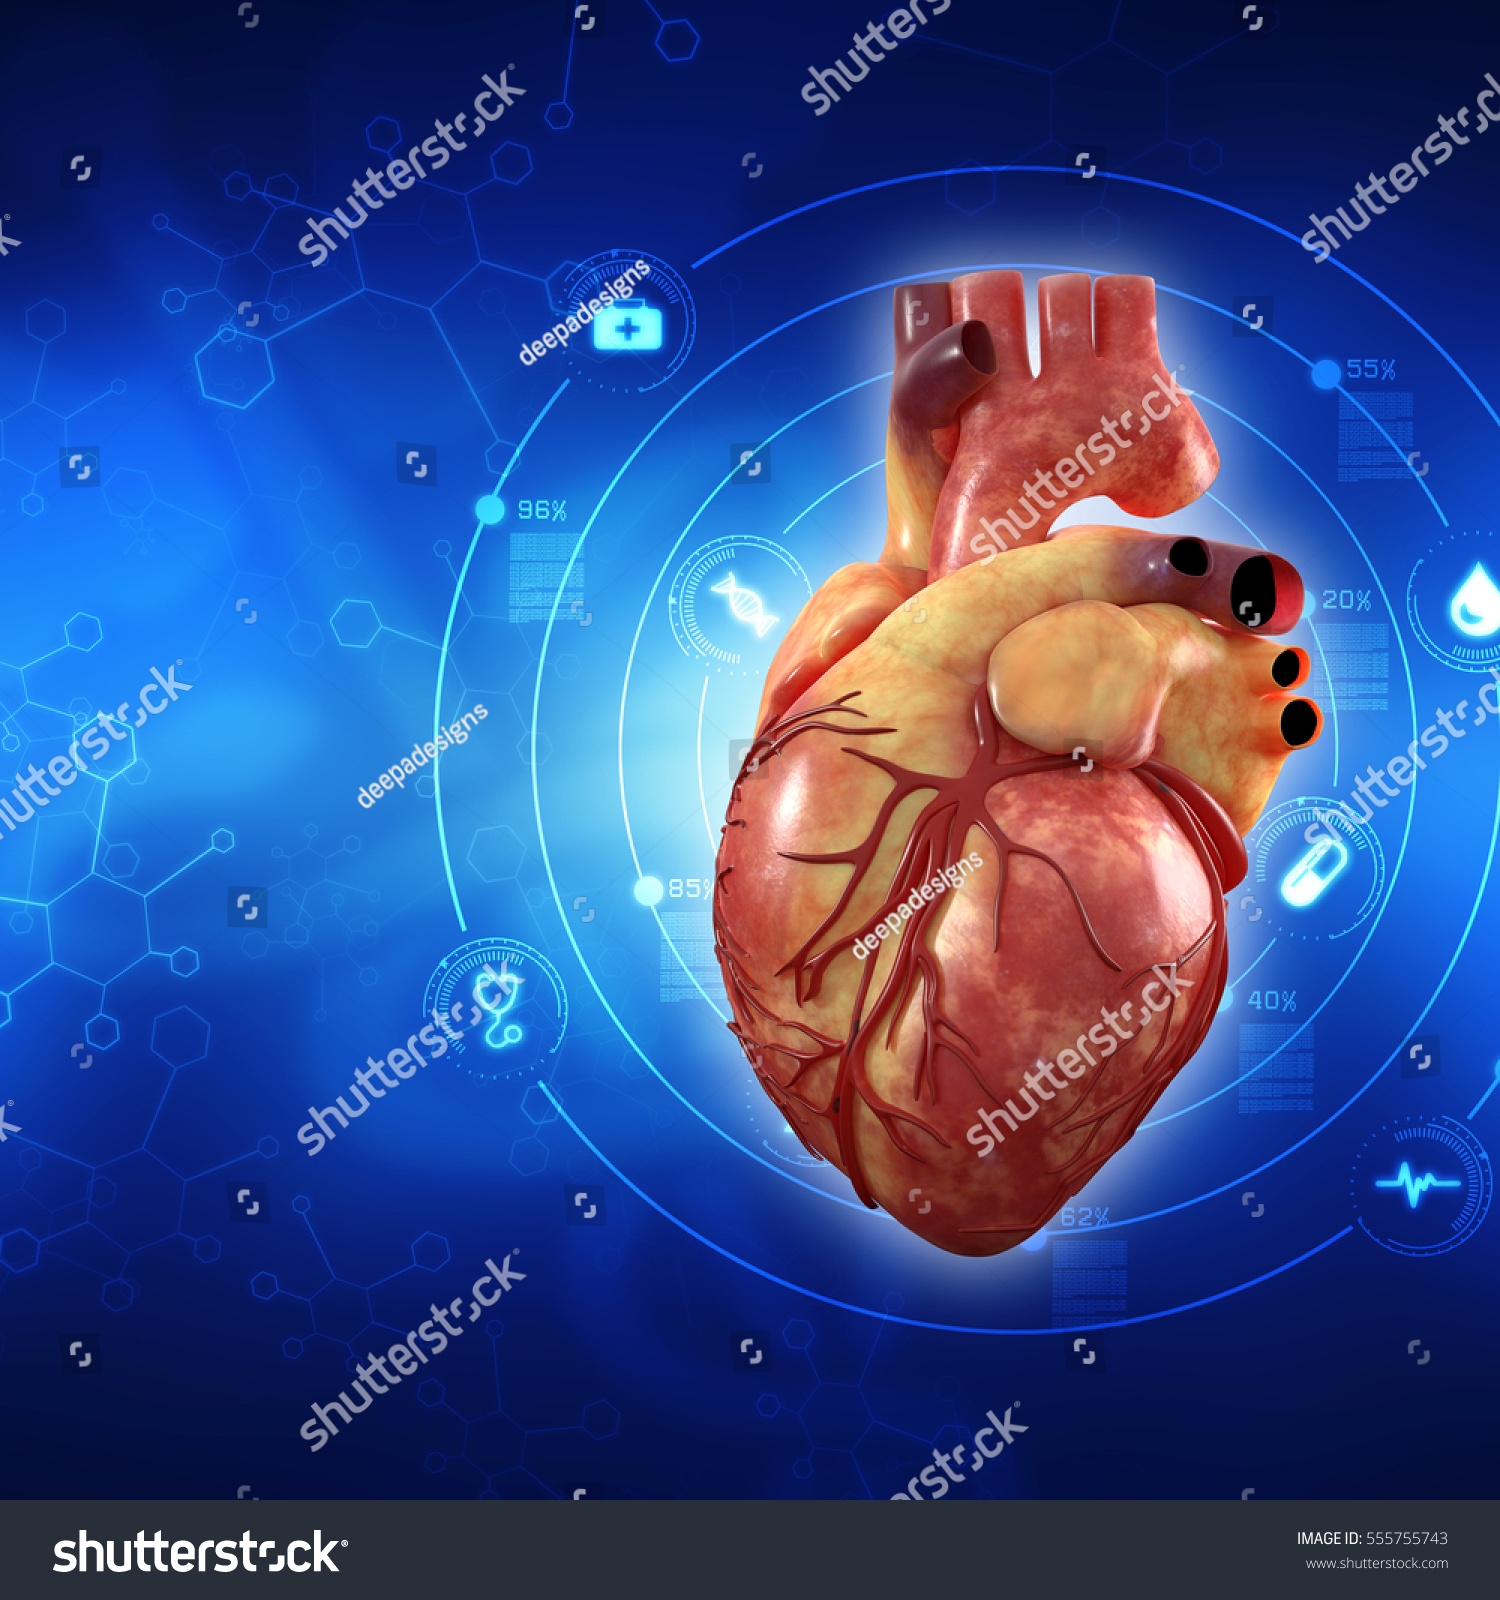 3 D Anatomy Human Heart Stock Illustration 555755743 - Shutterstock